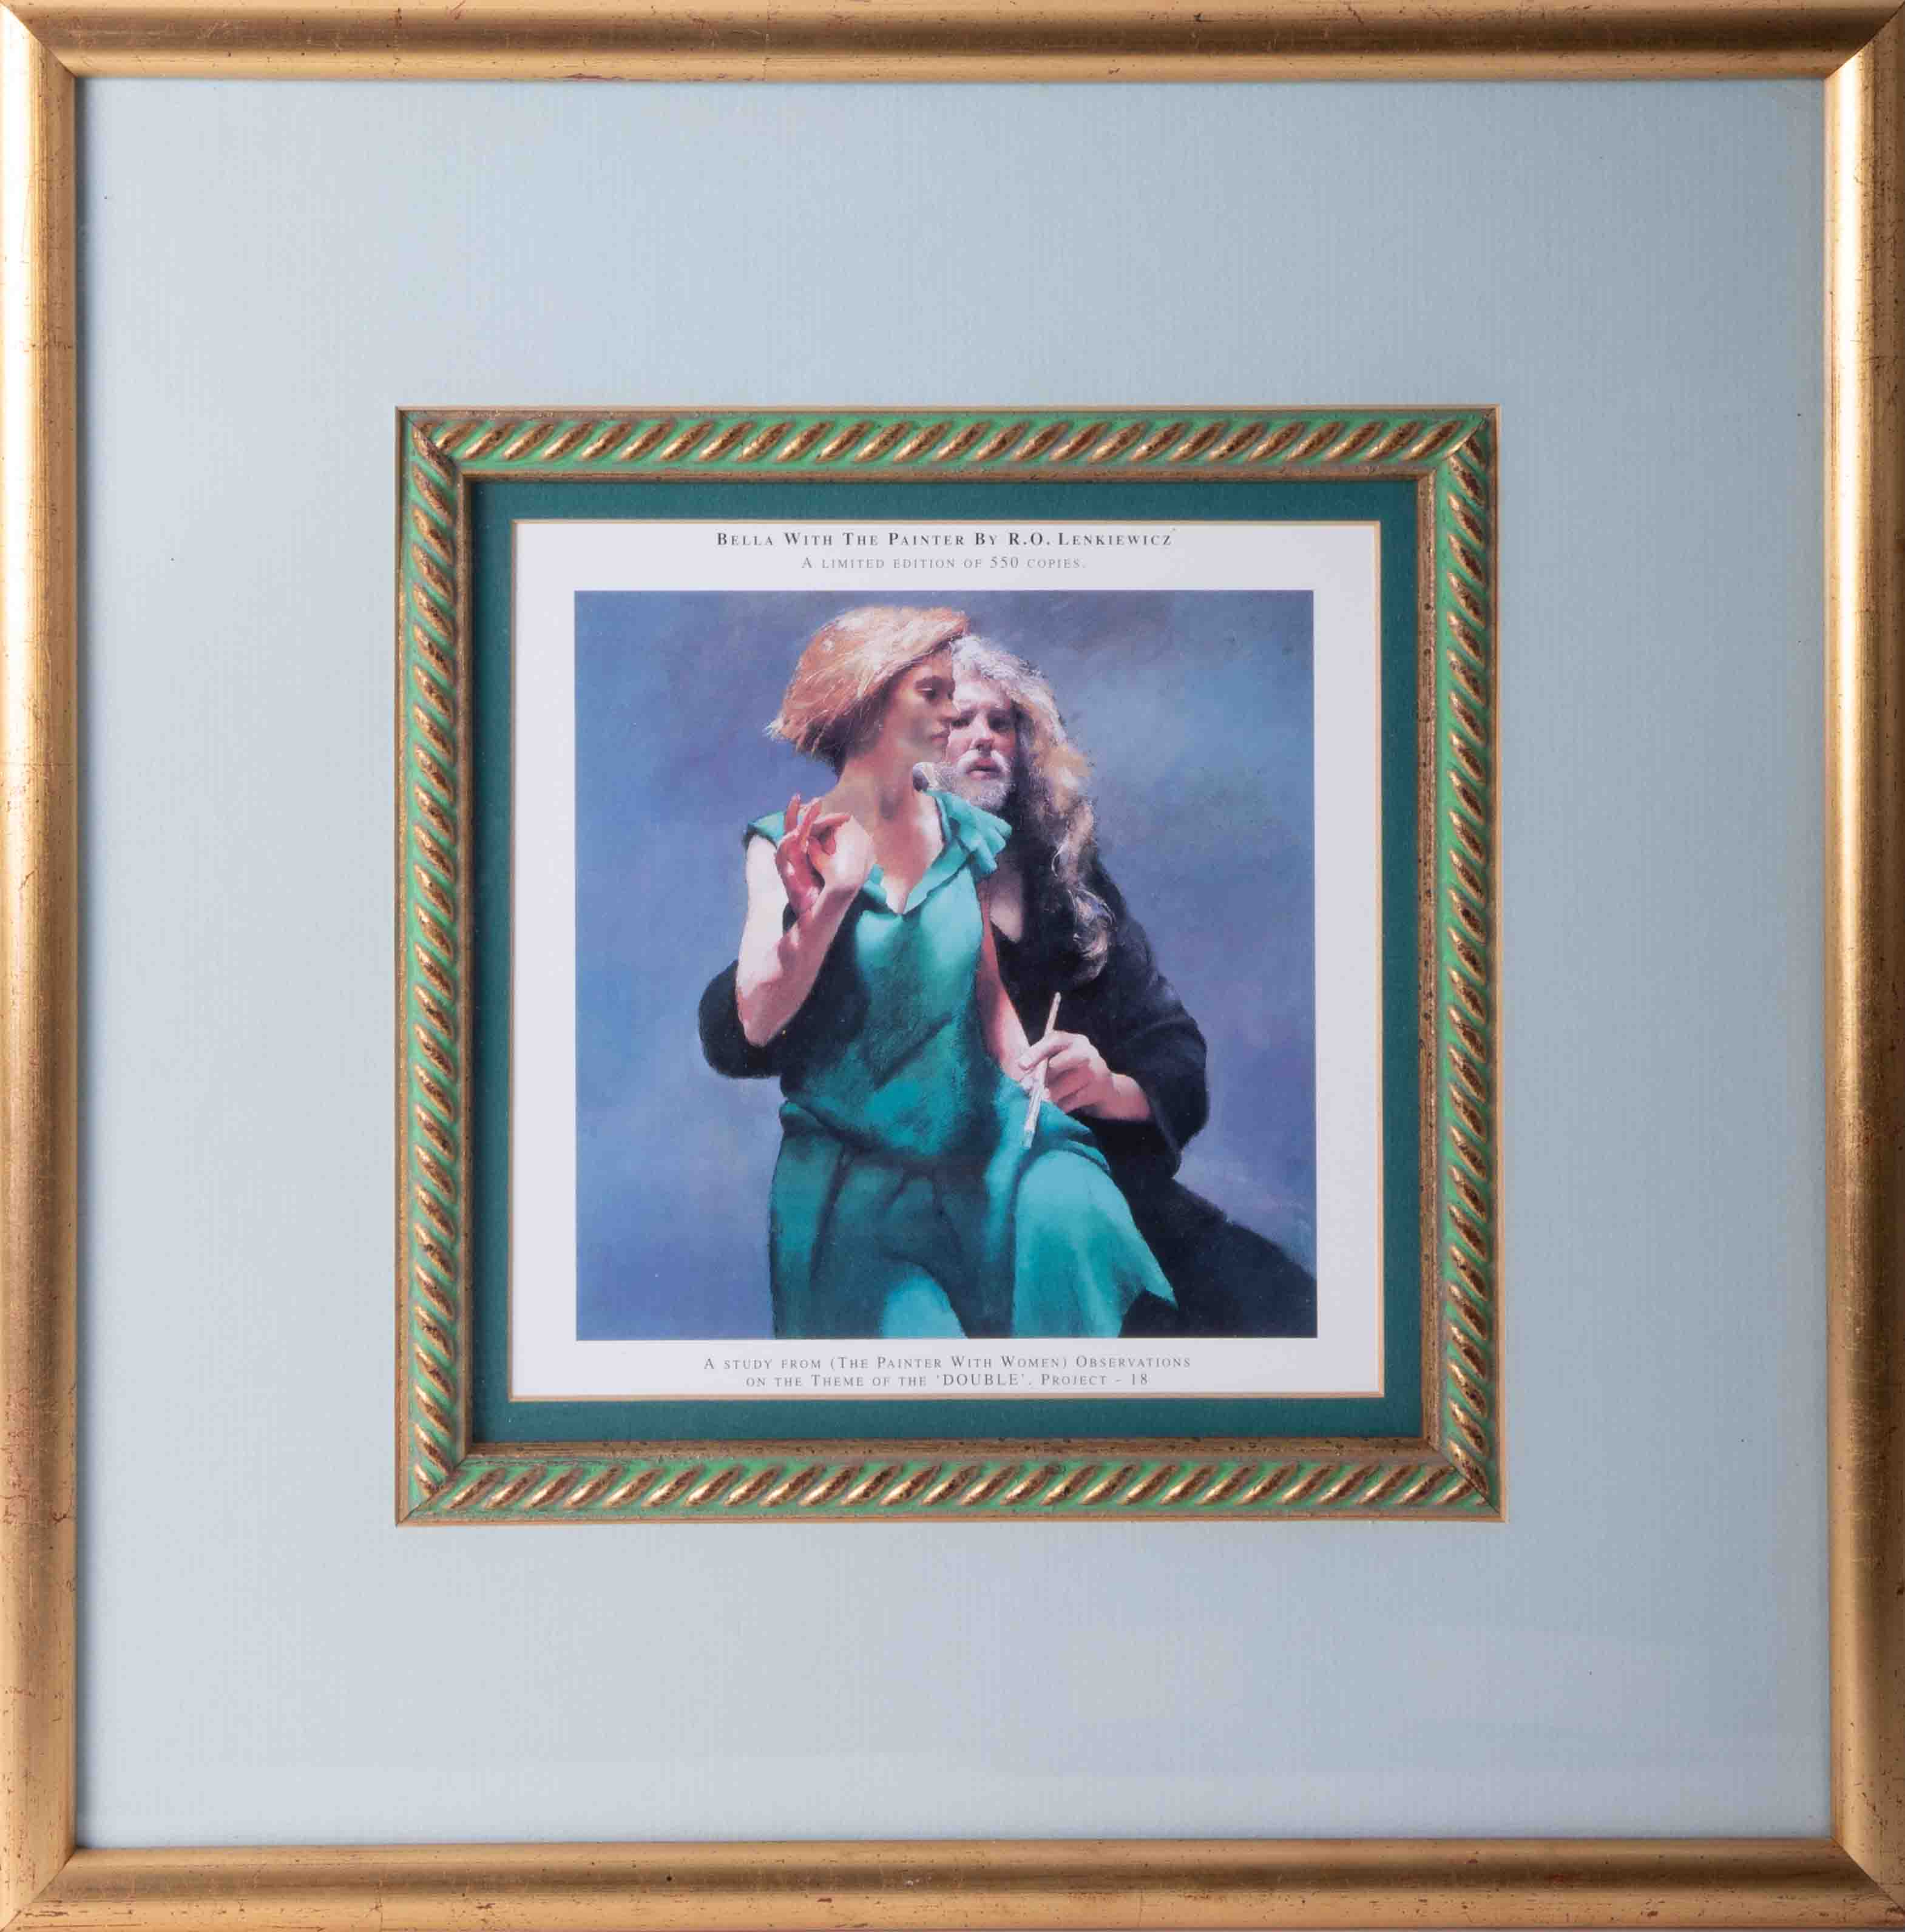 Robert Lenkiewicz (1941-2002) three open prints to include 'Bella With The Printer', all framed - Image 2 of 4